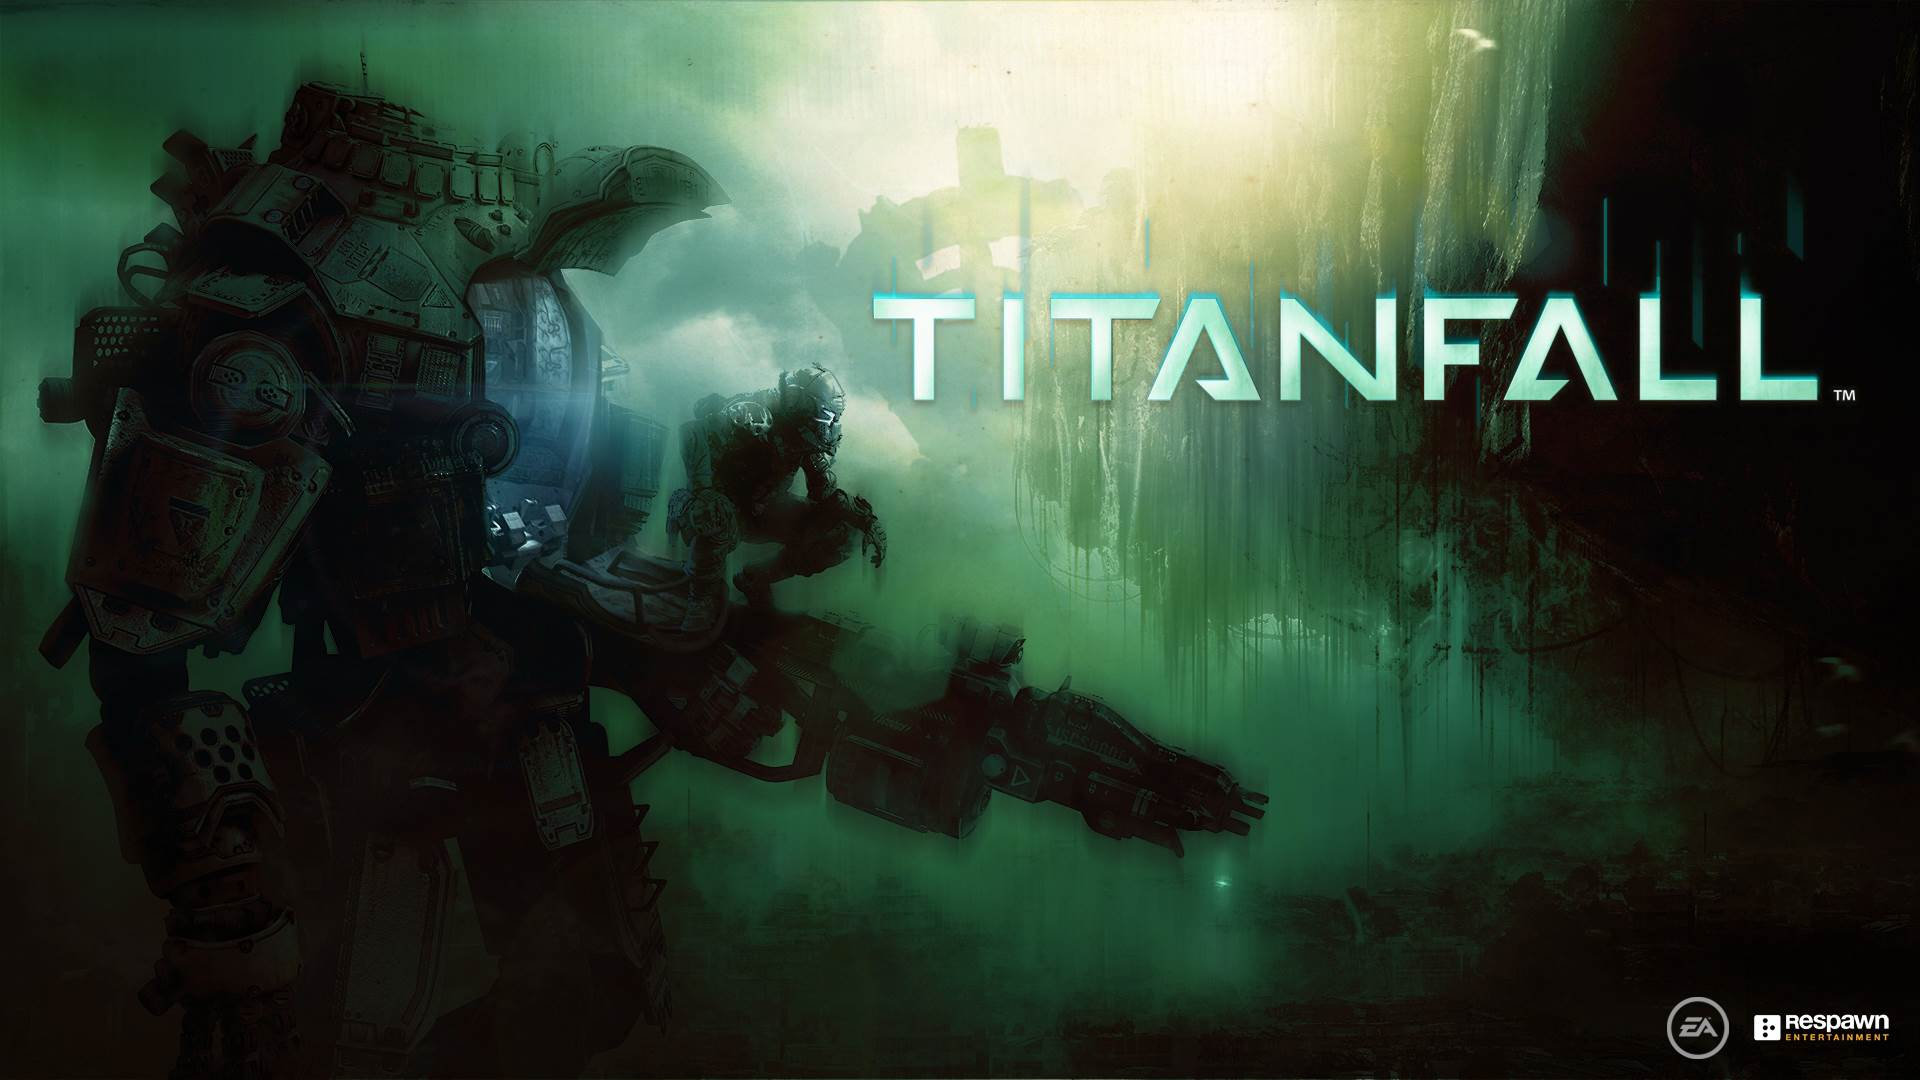 titanfall wallpapers in 1080p hd « video game news, reviews